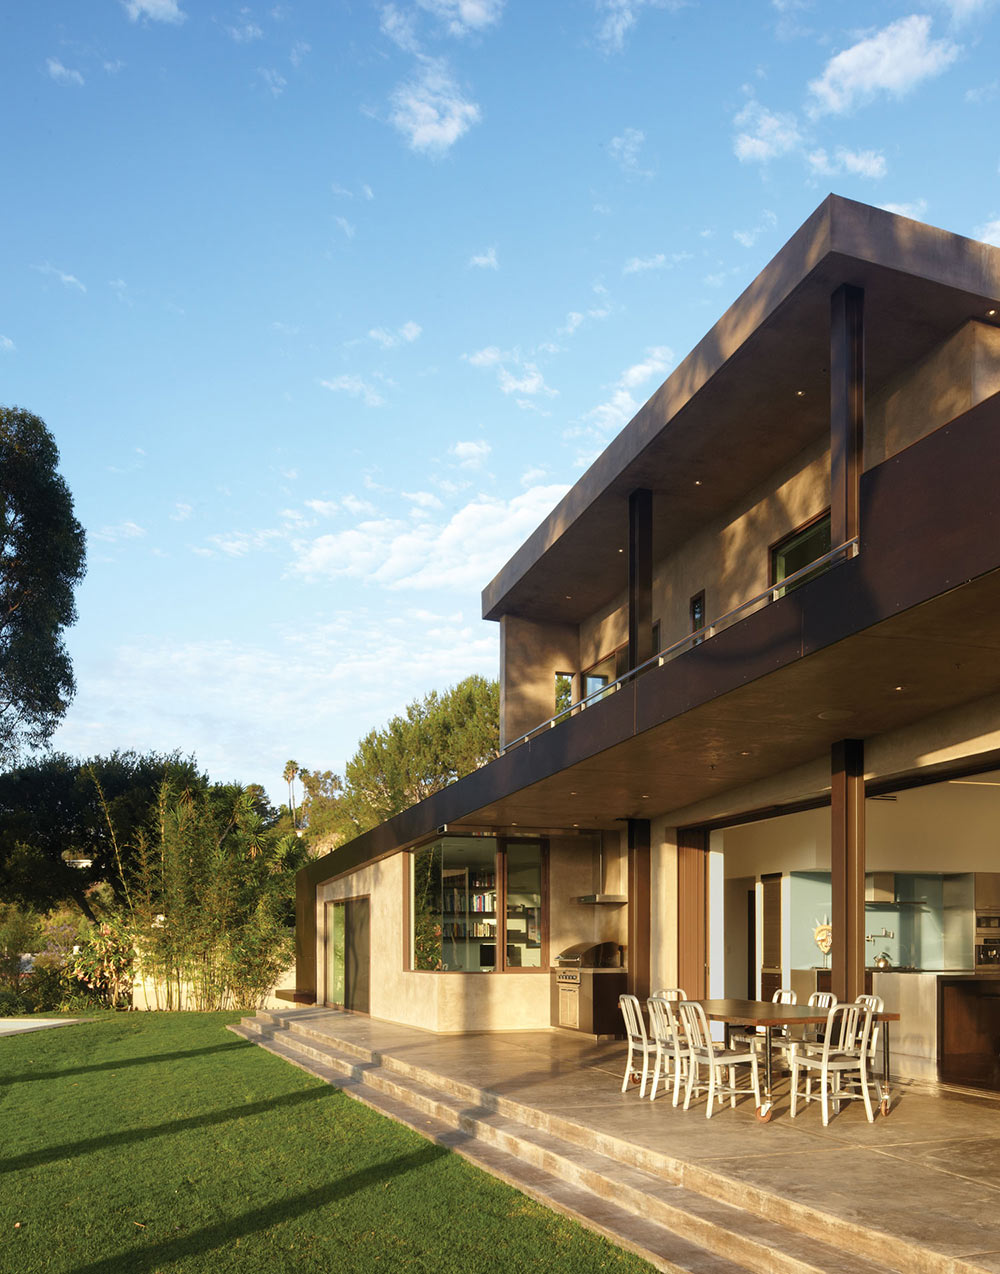 Terrace, Outdoor Dining, Mandeville Canyon Residence in Los Angeles by Griffin Enright Architects